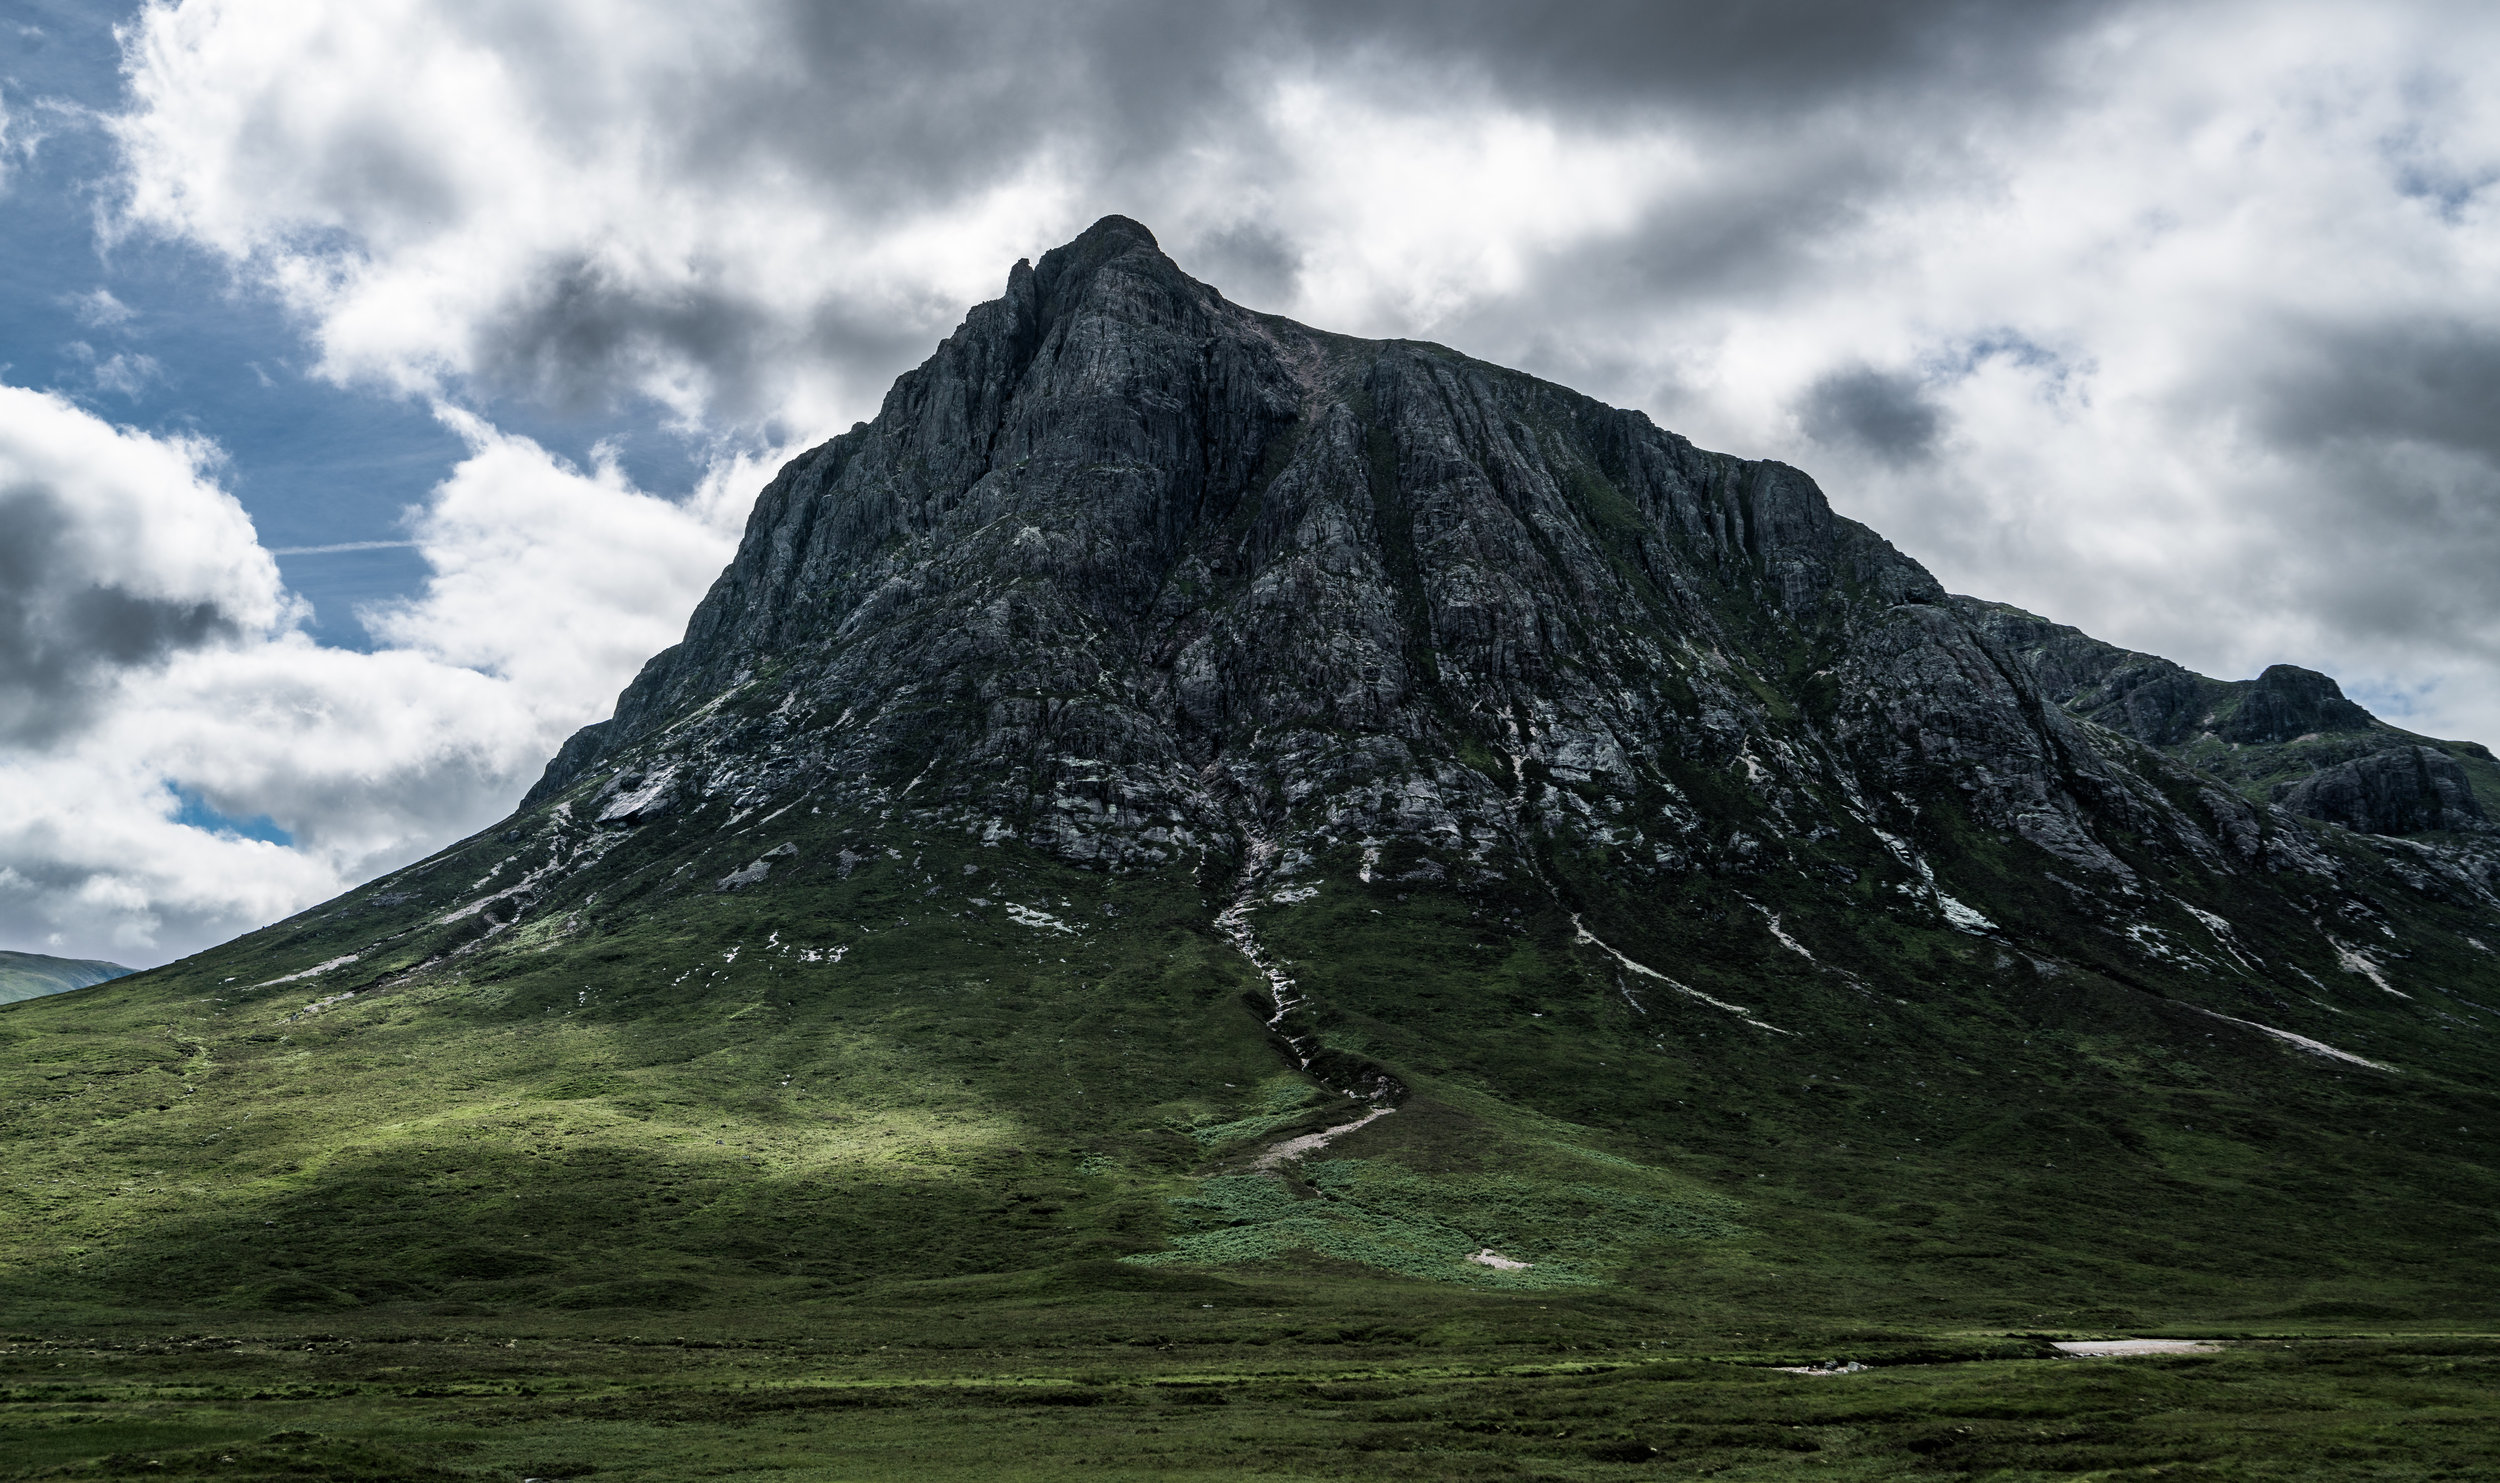 Scottish mountain scene along the A82/A87 Glencoe/Isle of Skye road